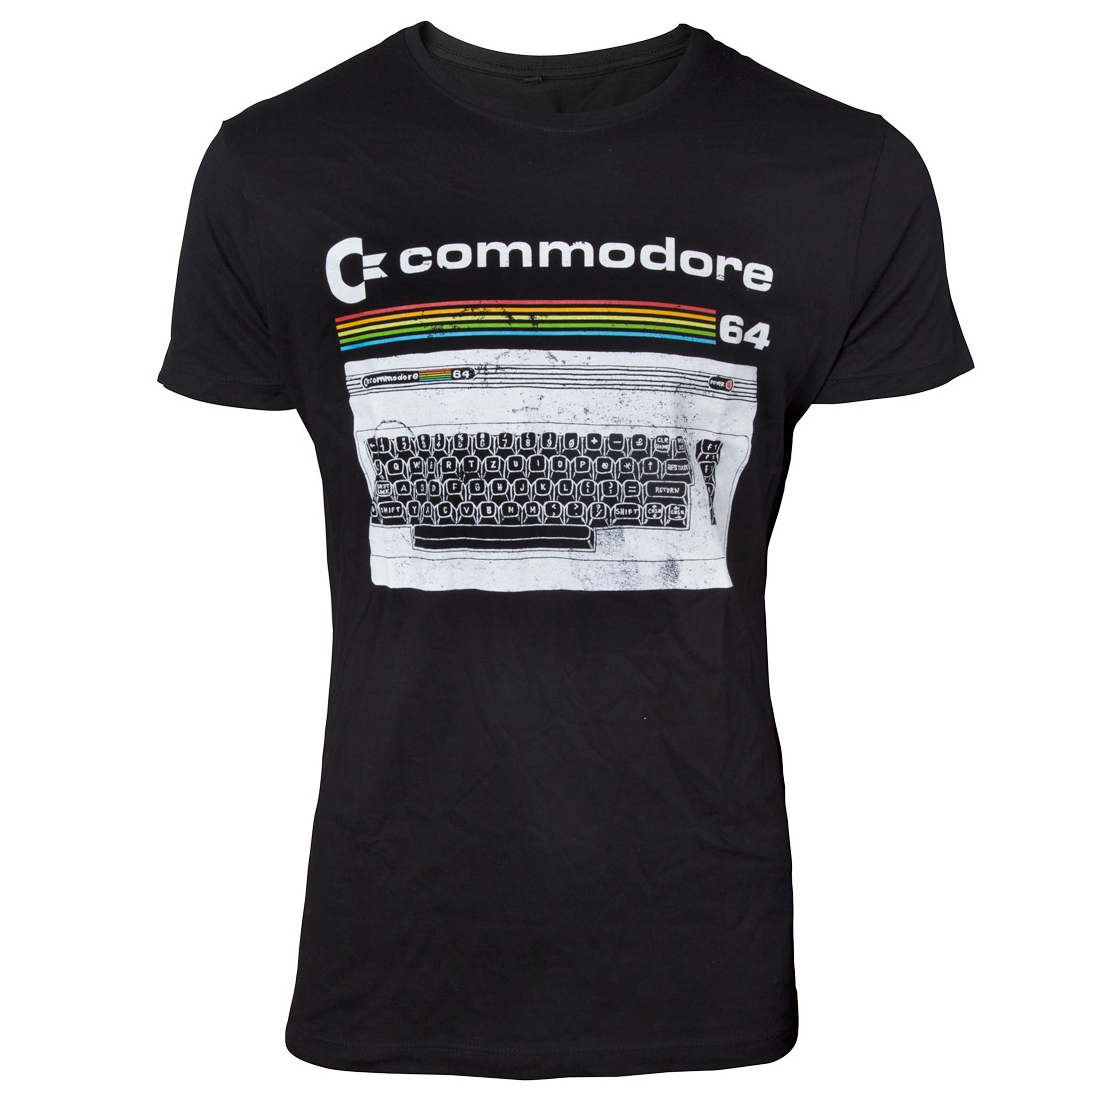 Commodore 64 Keyboard T-Shirt